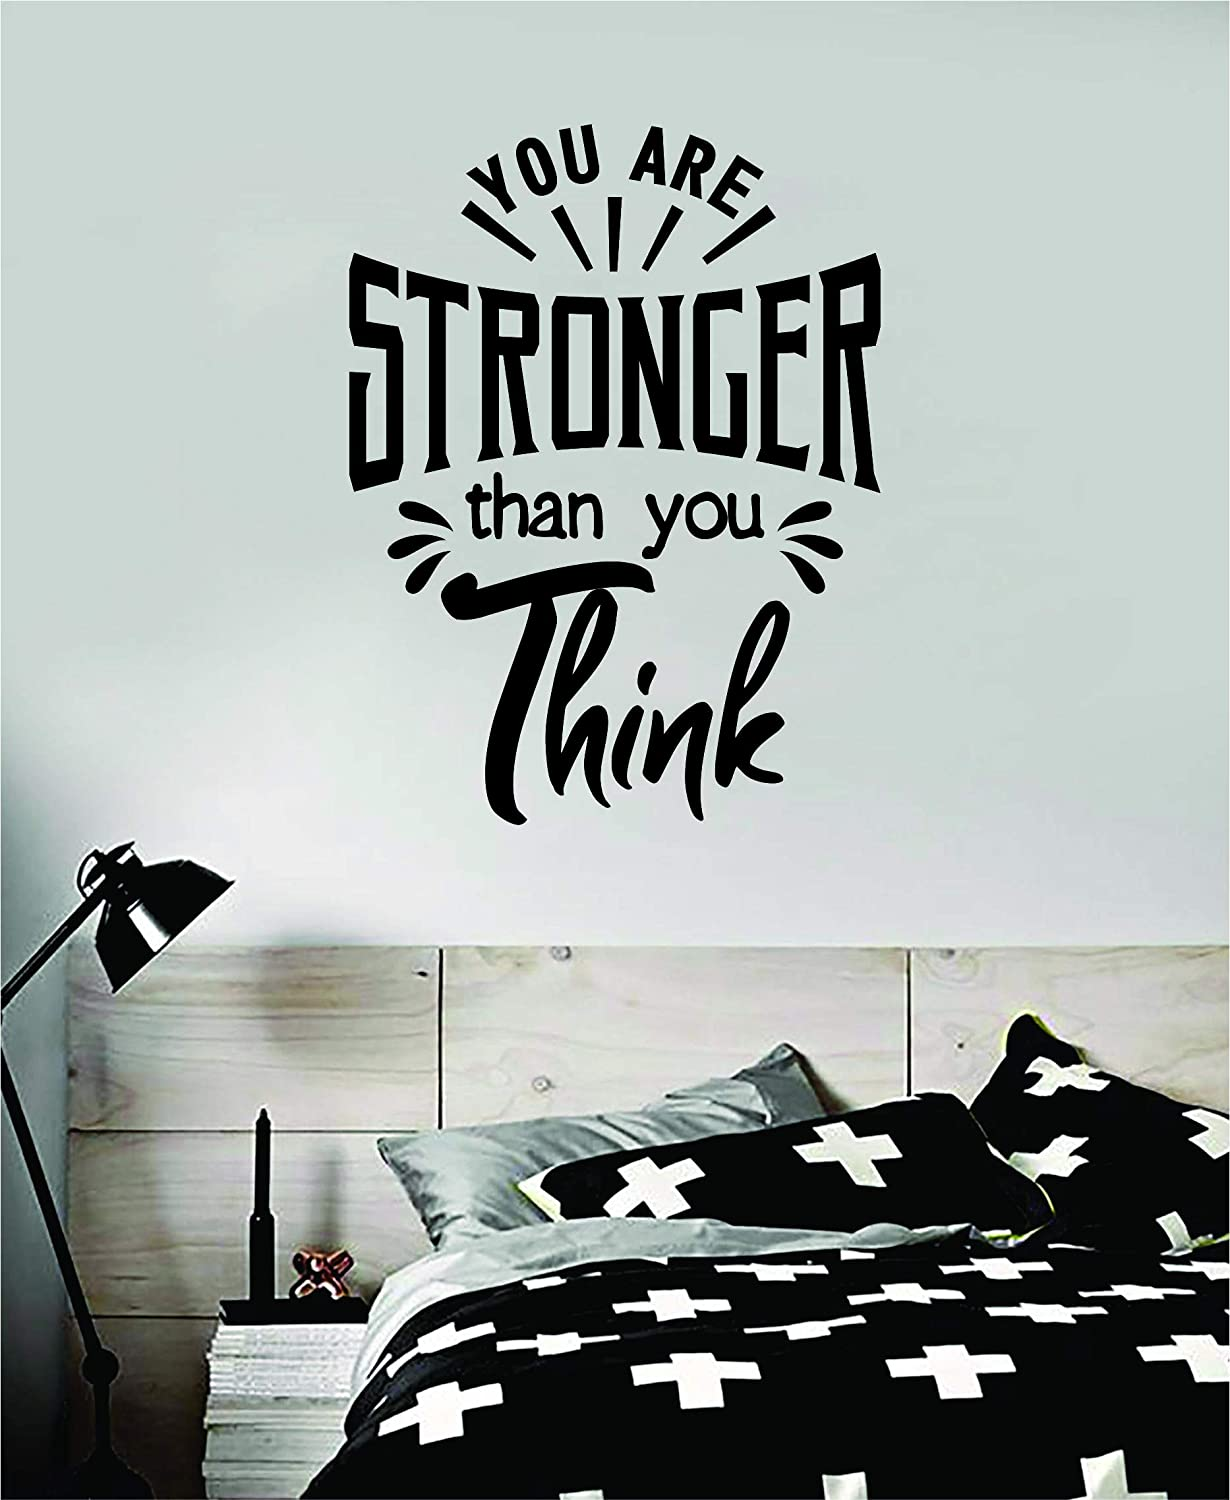 You are Stronger Than You Think Wall Decal Sticker Vinyl Art Bedroom Room Decor Quote Inspirational Boy Girl Kids Children Baby Cute Son Daughter School Motivational Nursery Work Gym Fitness Health